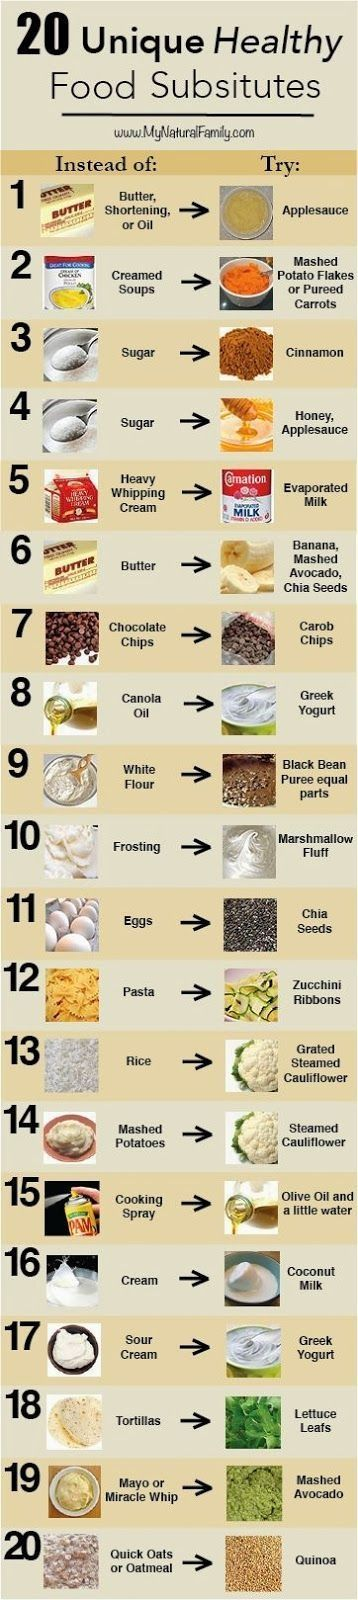 Want healthy substitutes for those high sodium, fatty recipes? Try these healthy substitutes instead.